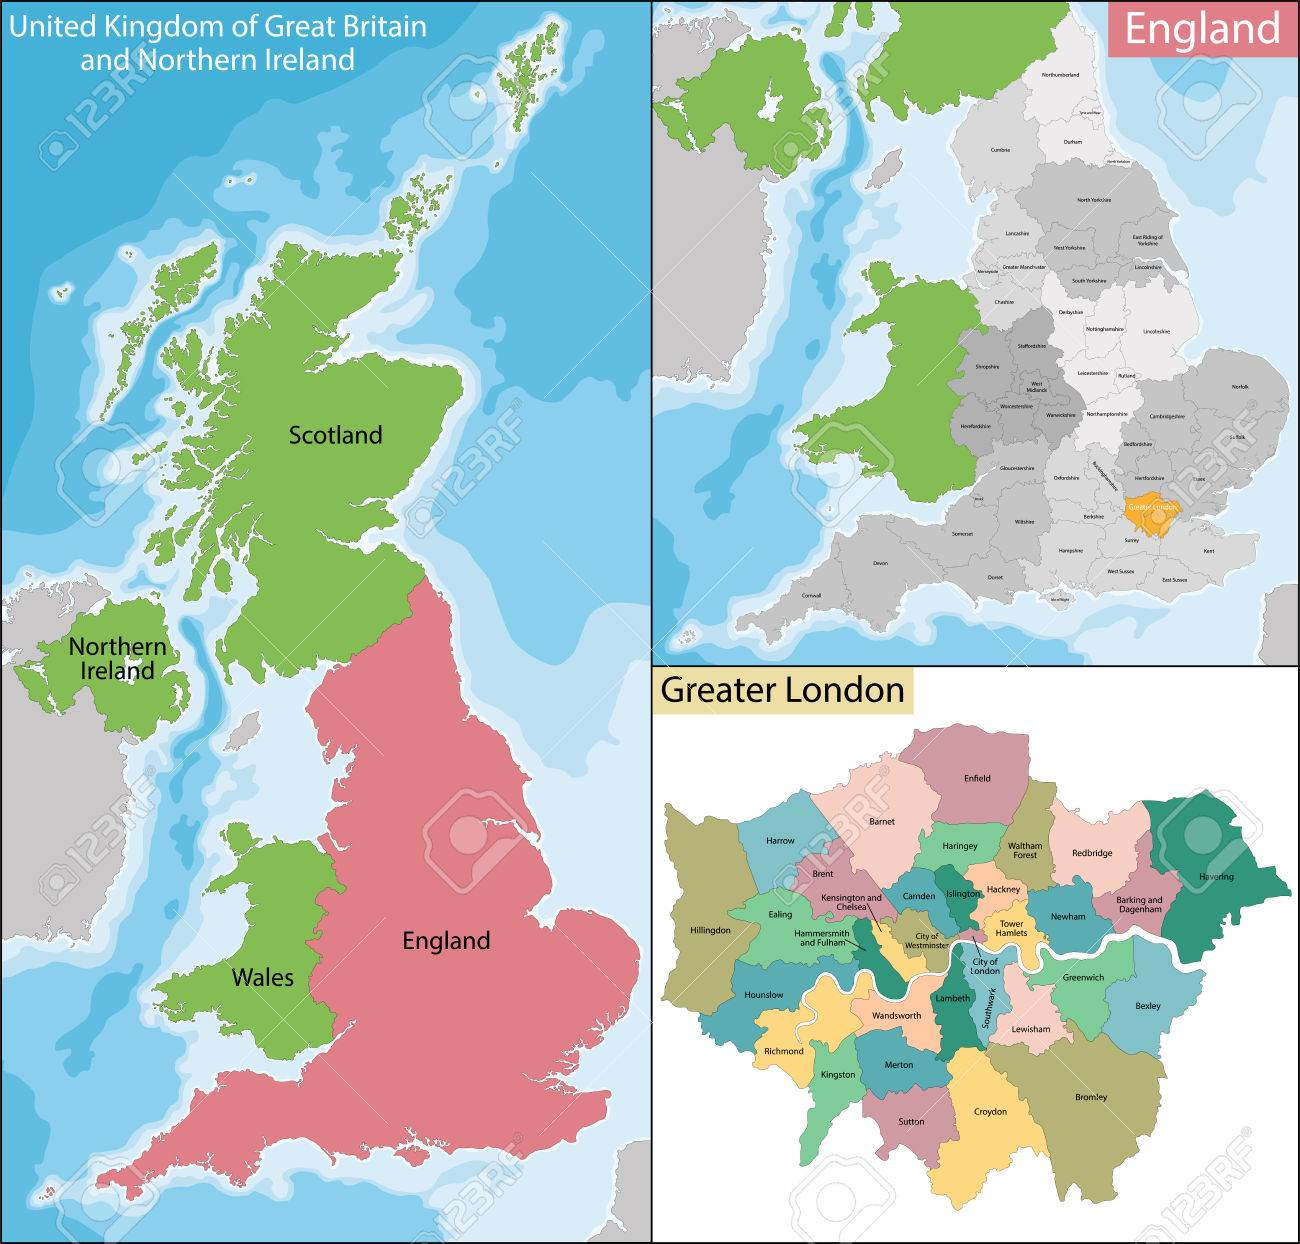 London On The Map Of England.Map Of The Subdivisions Of England With The Greater London That